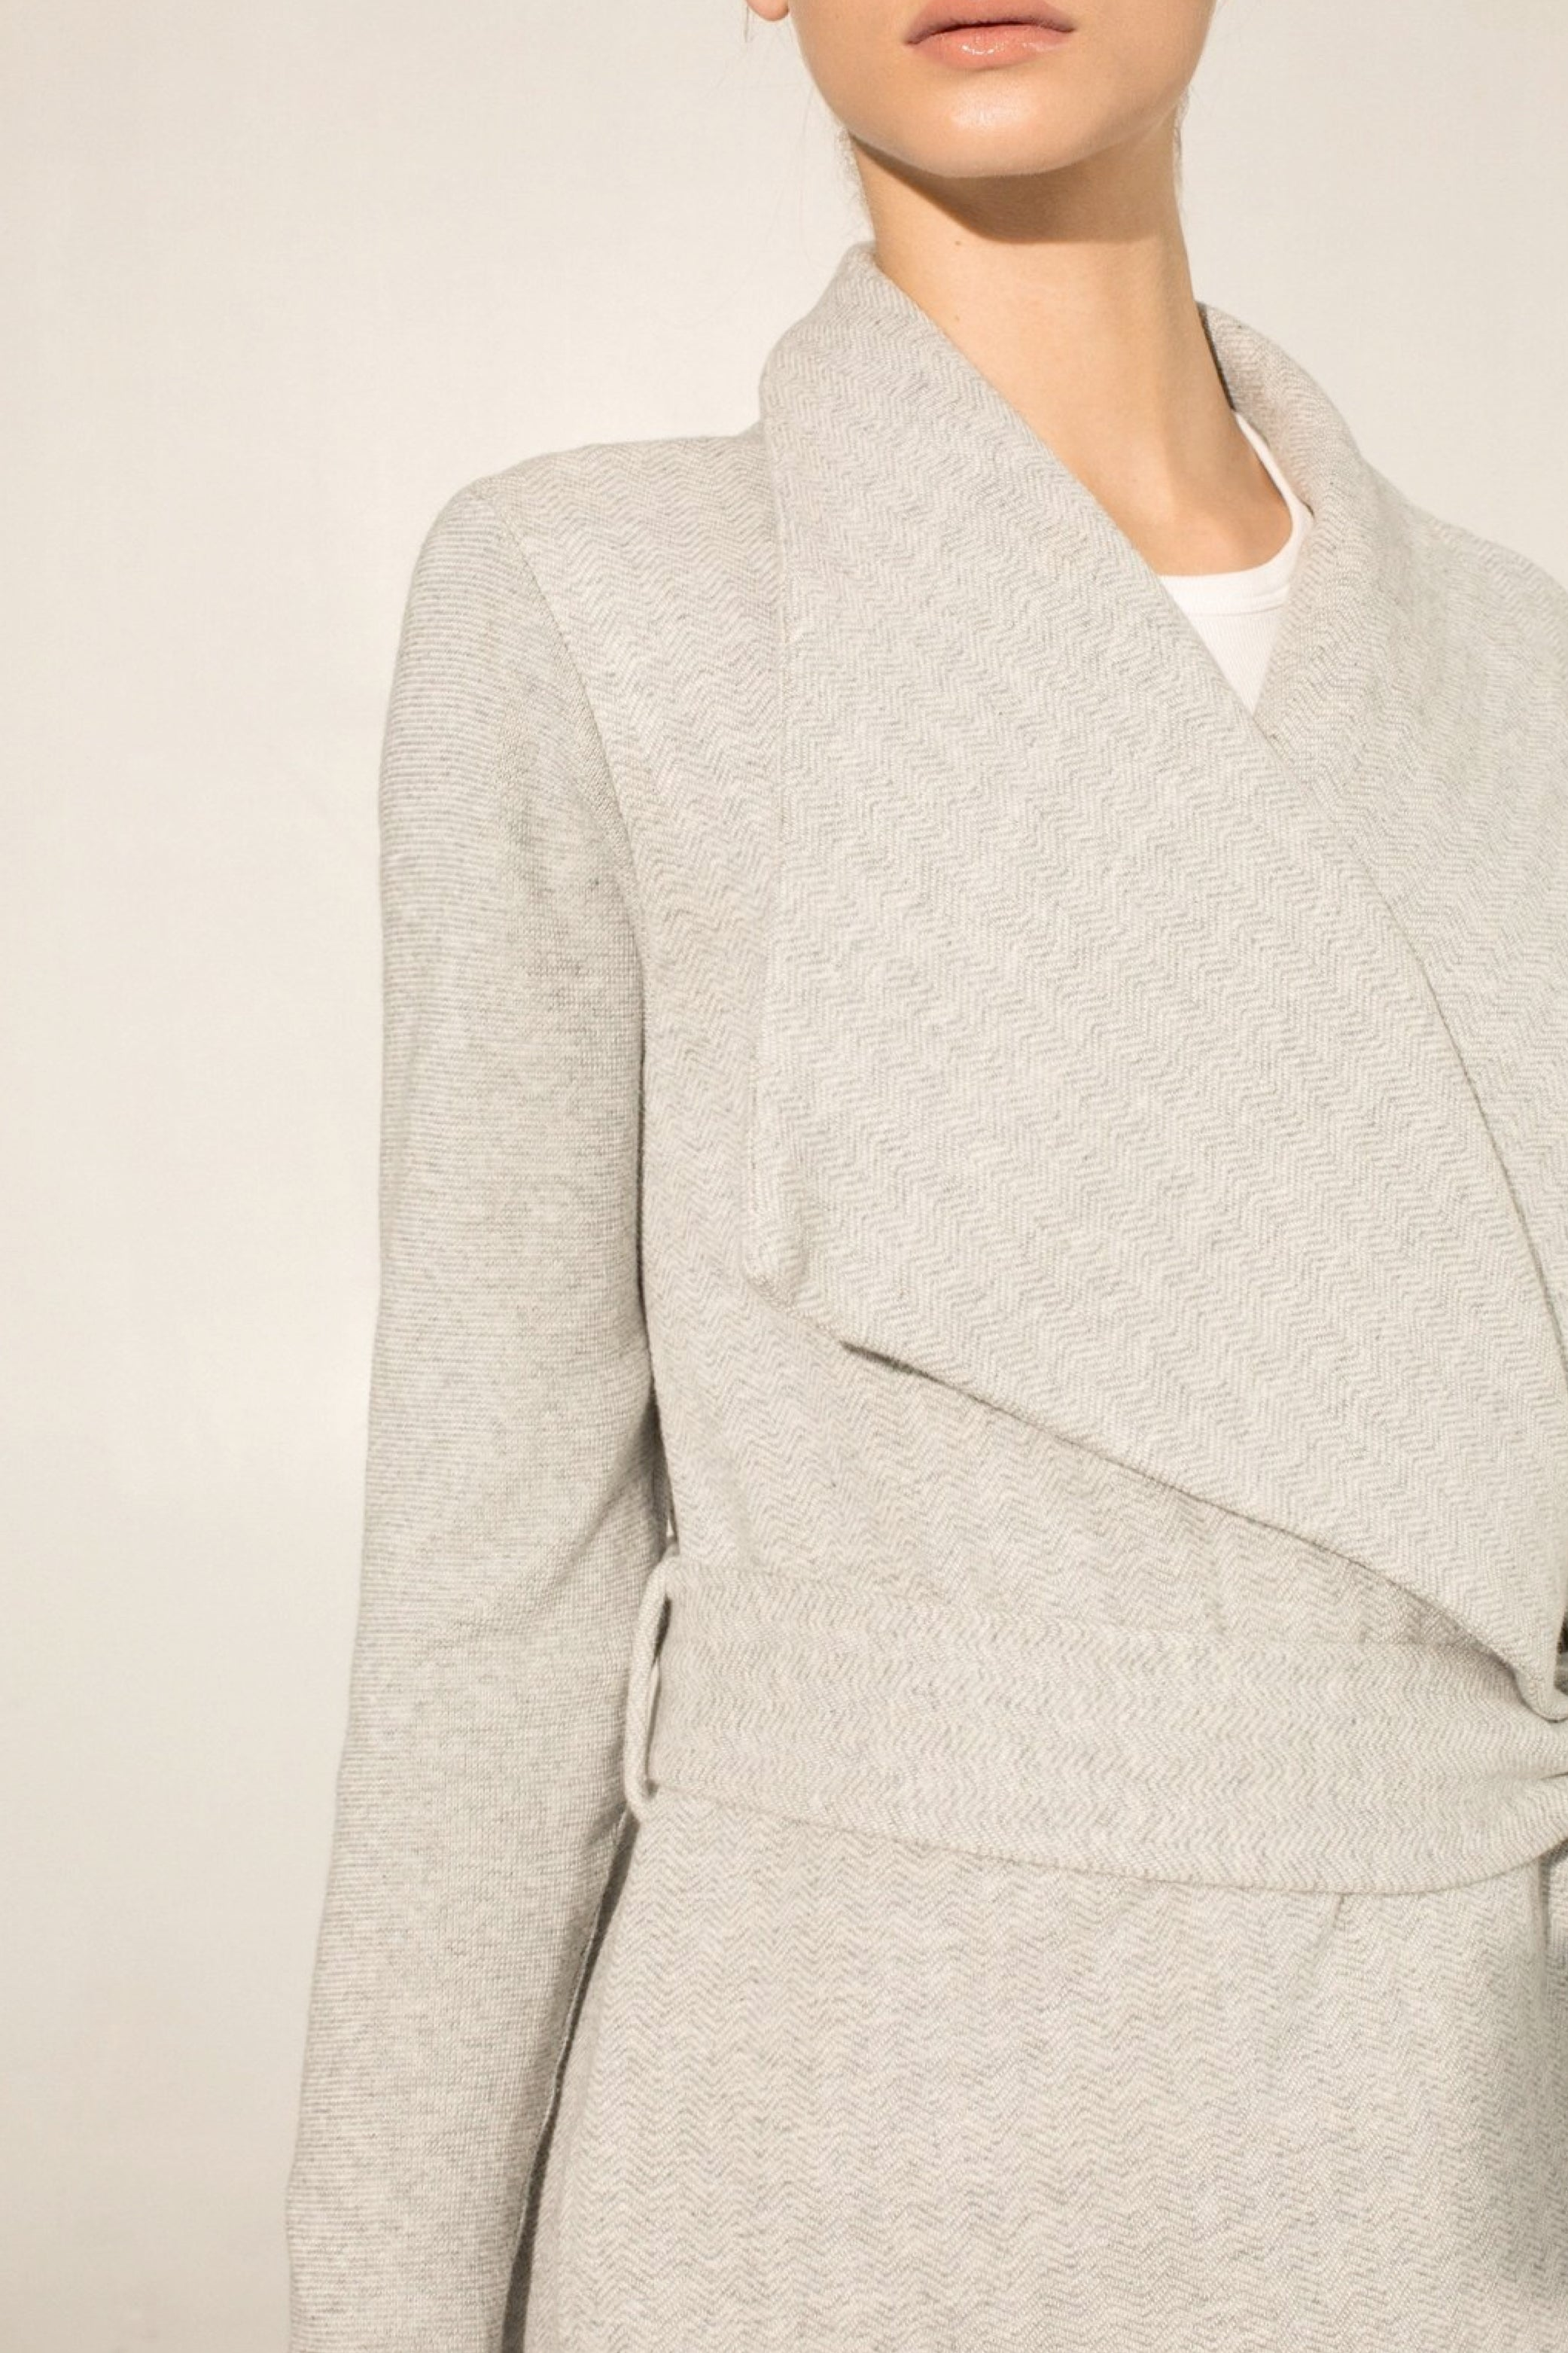 Wrap Coat Gray